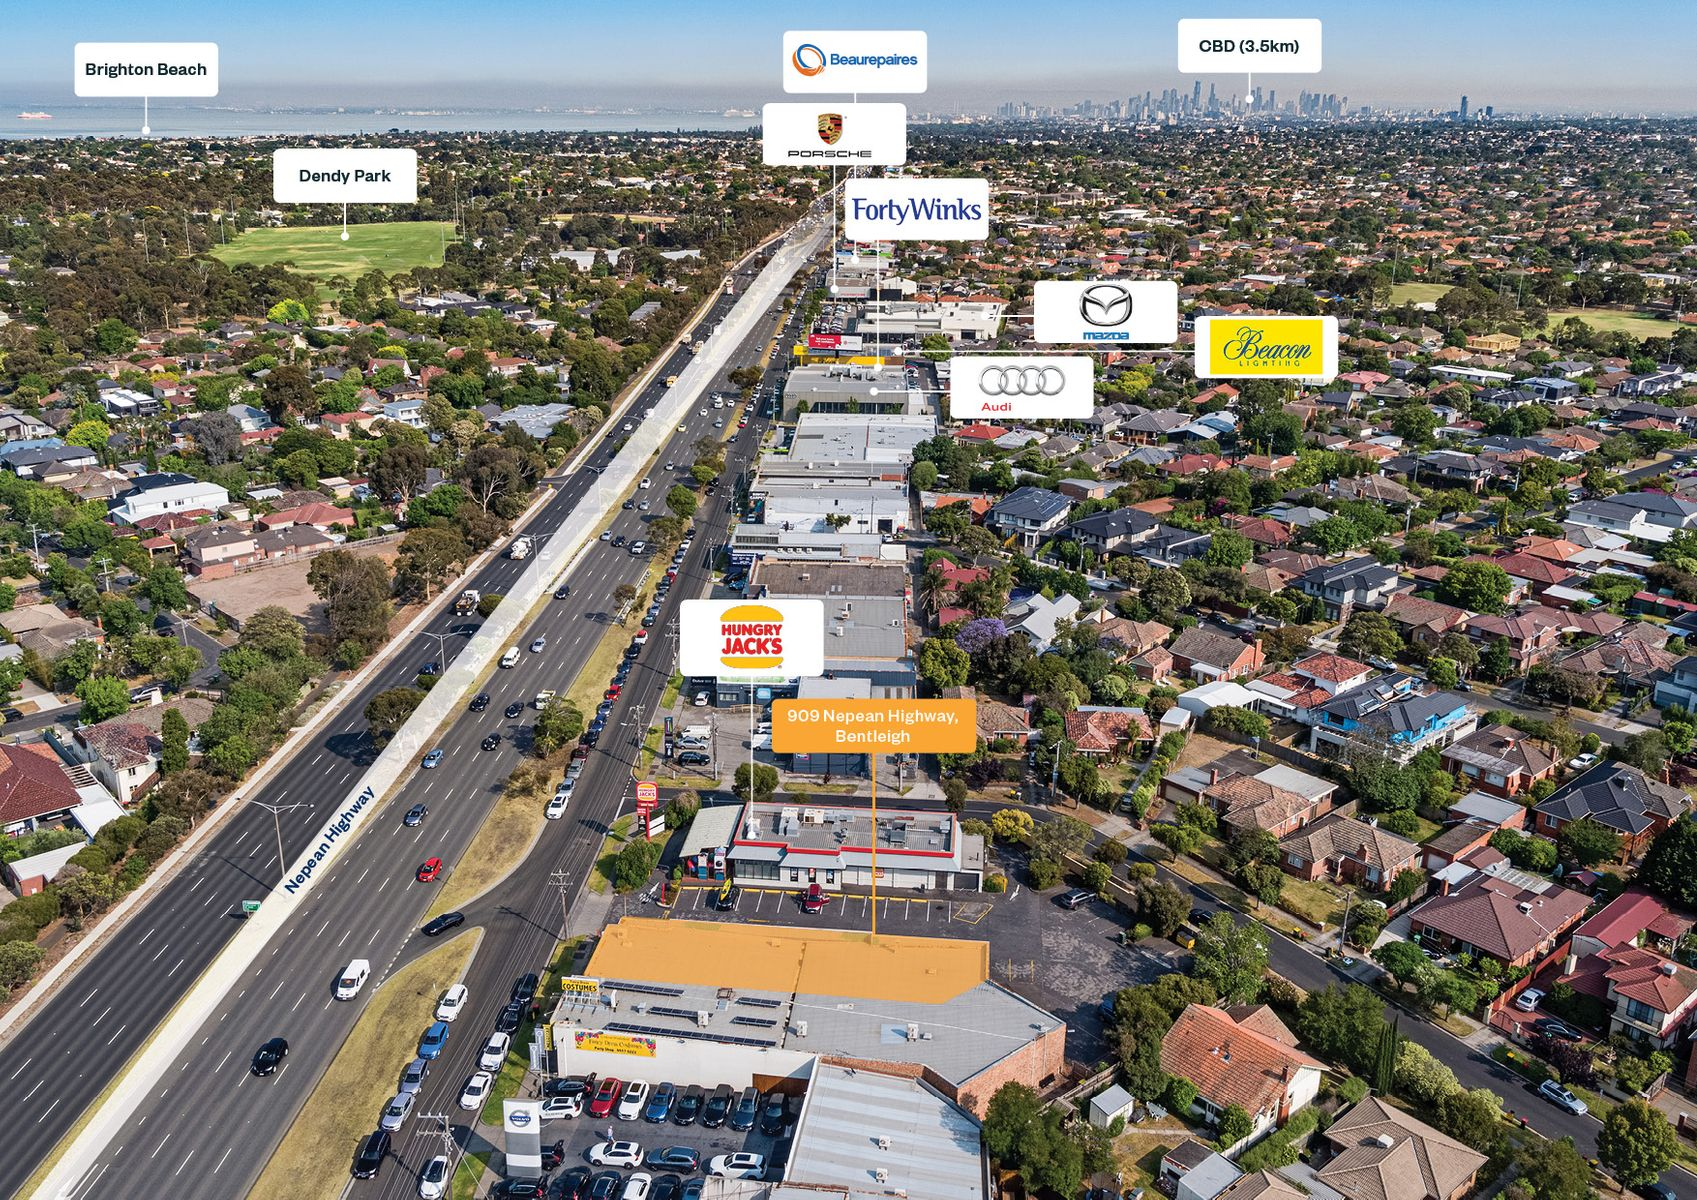 TC0143 909 Nepean Highway, Bentleigh MarkUp 0022 V3